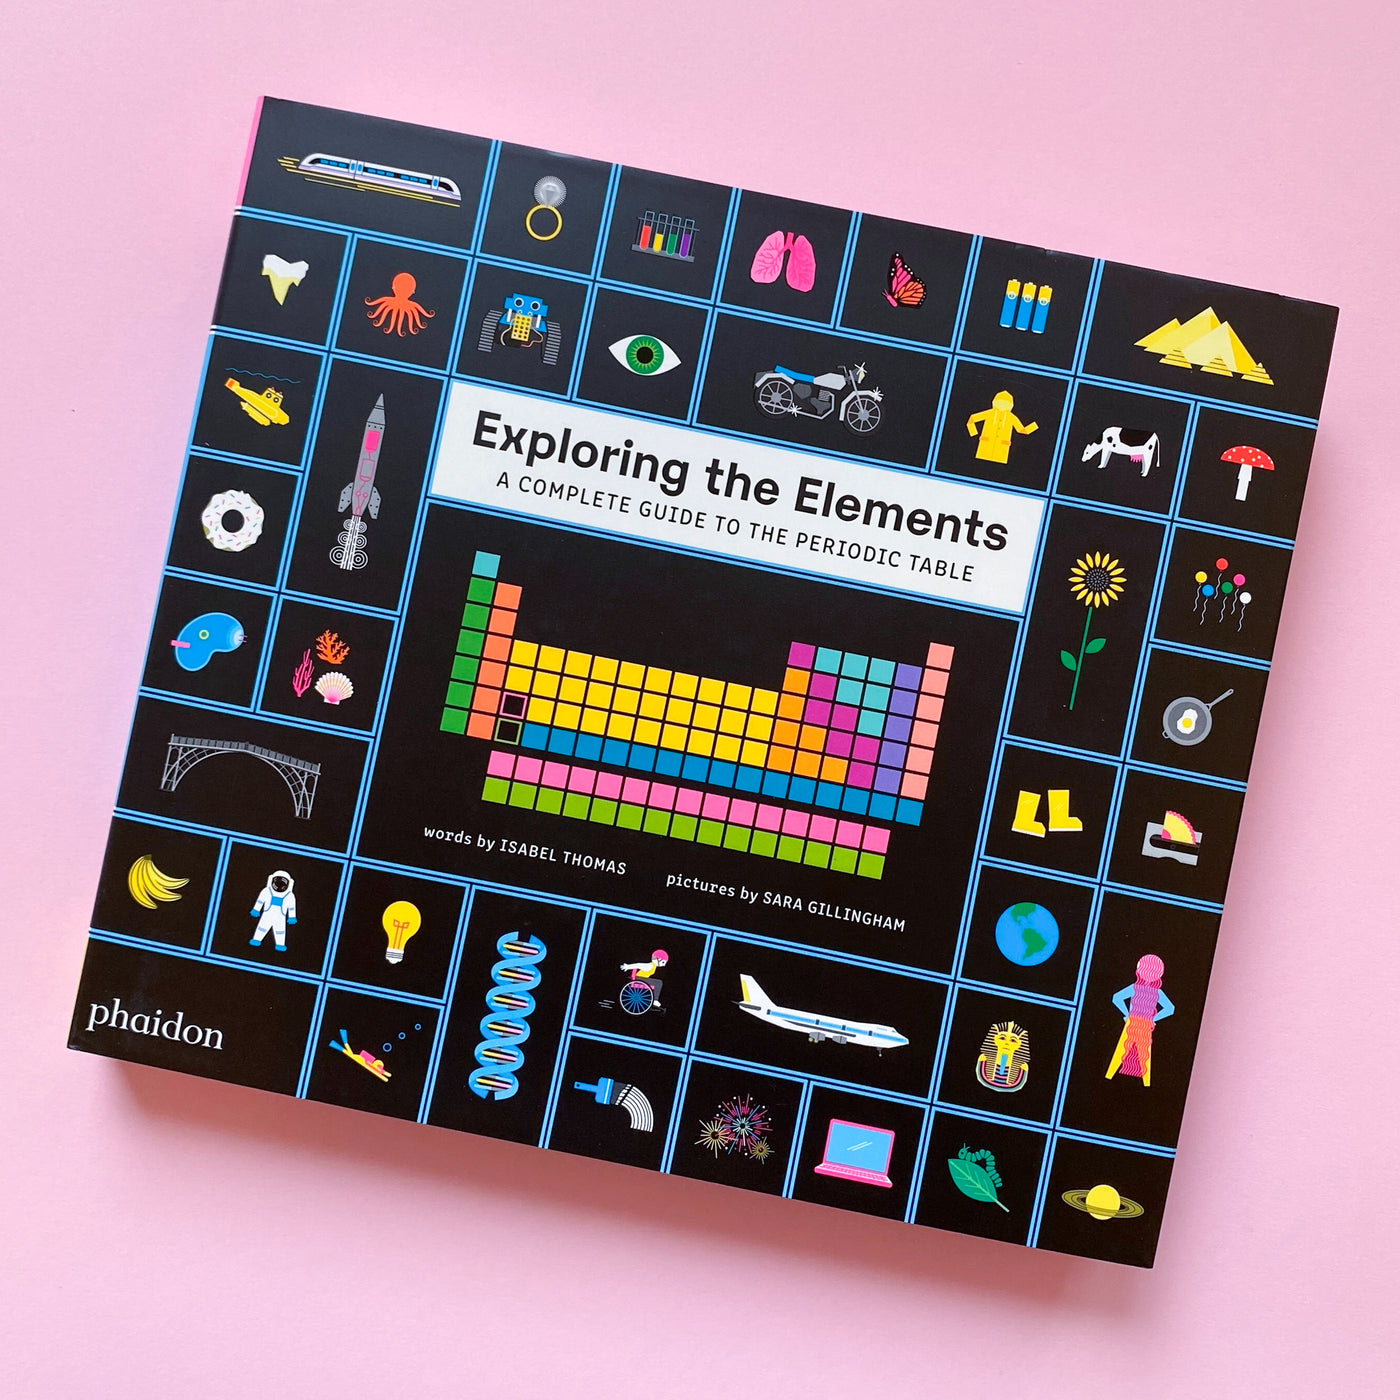 Exploring the Elements by Isabel Thomas and Sara Gillingham